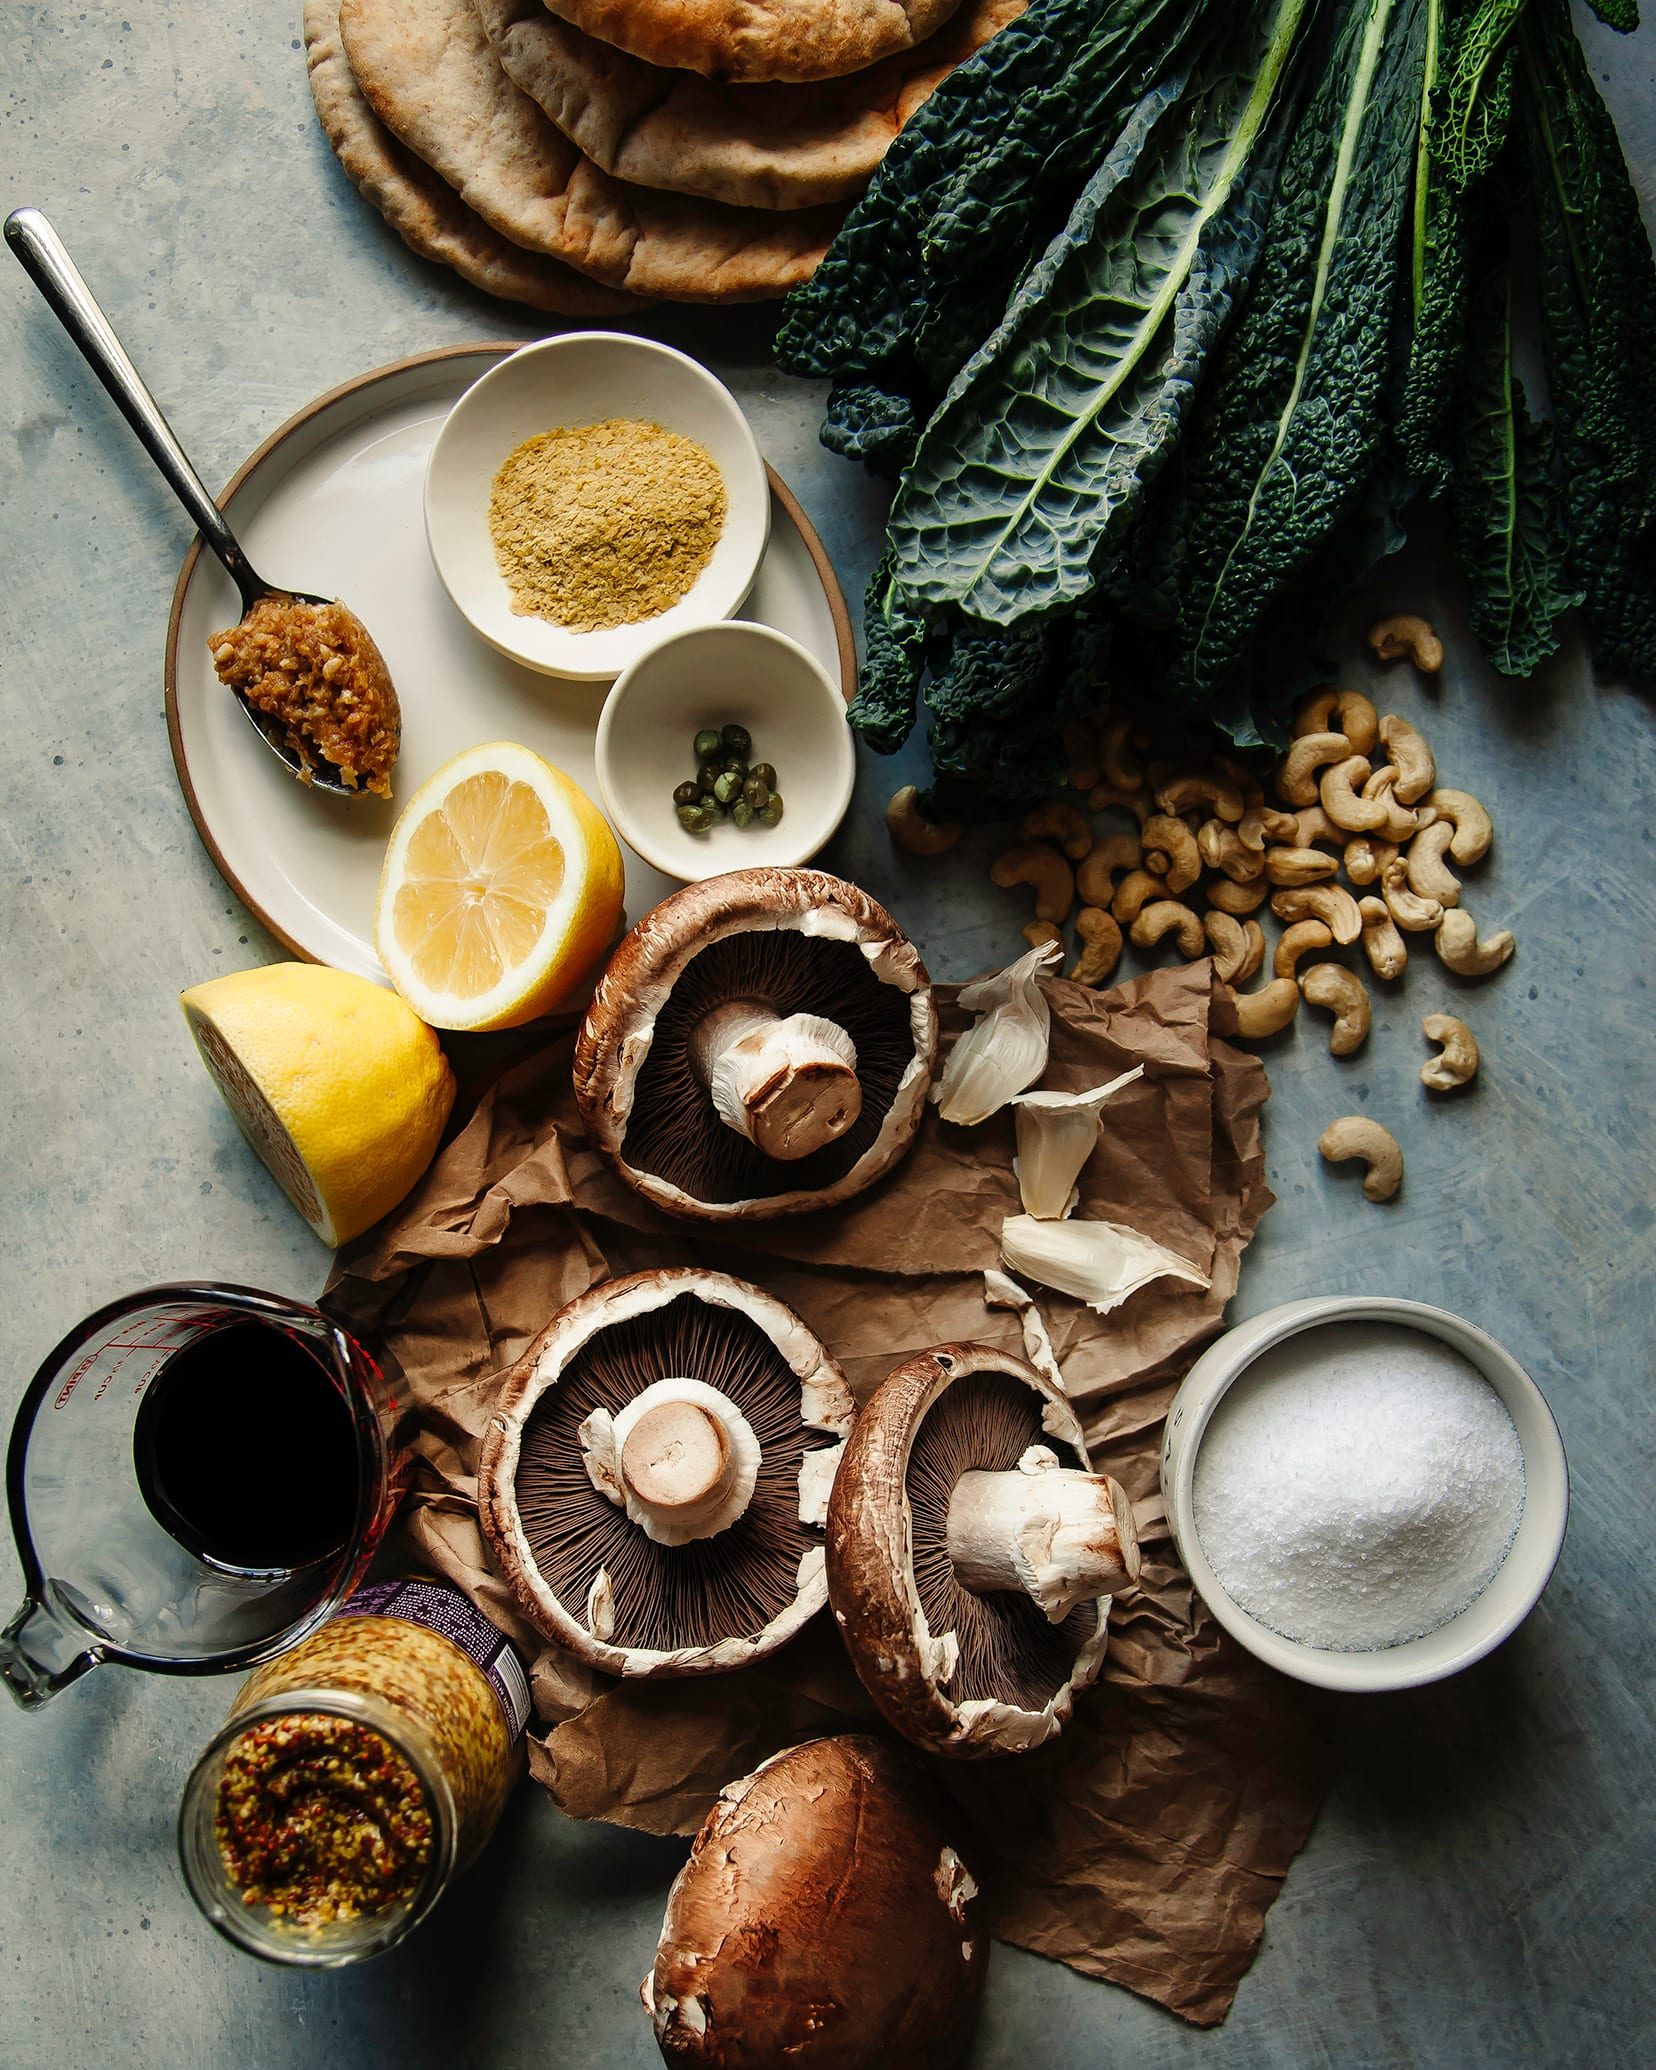 An overhead shot of ingredients for making a grilled mushroom pita with greens.